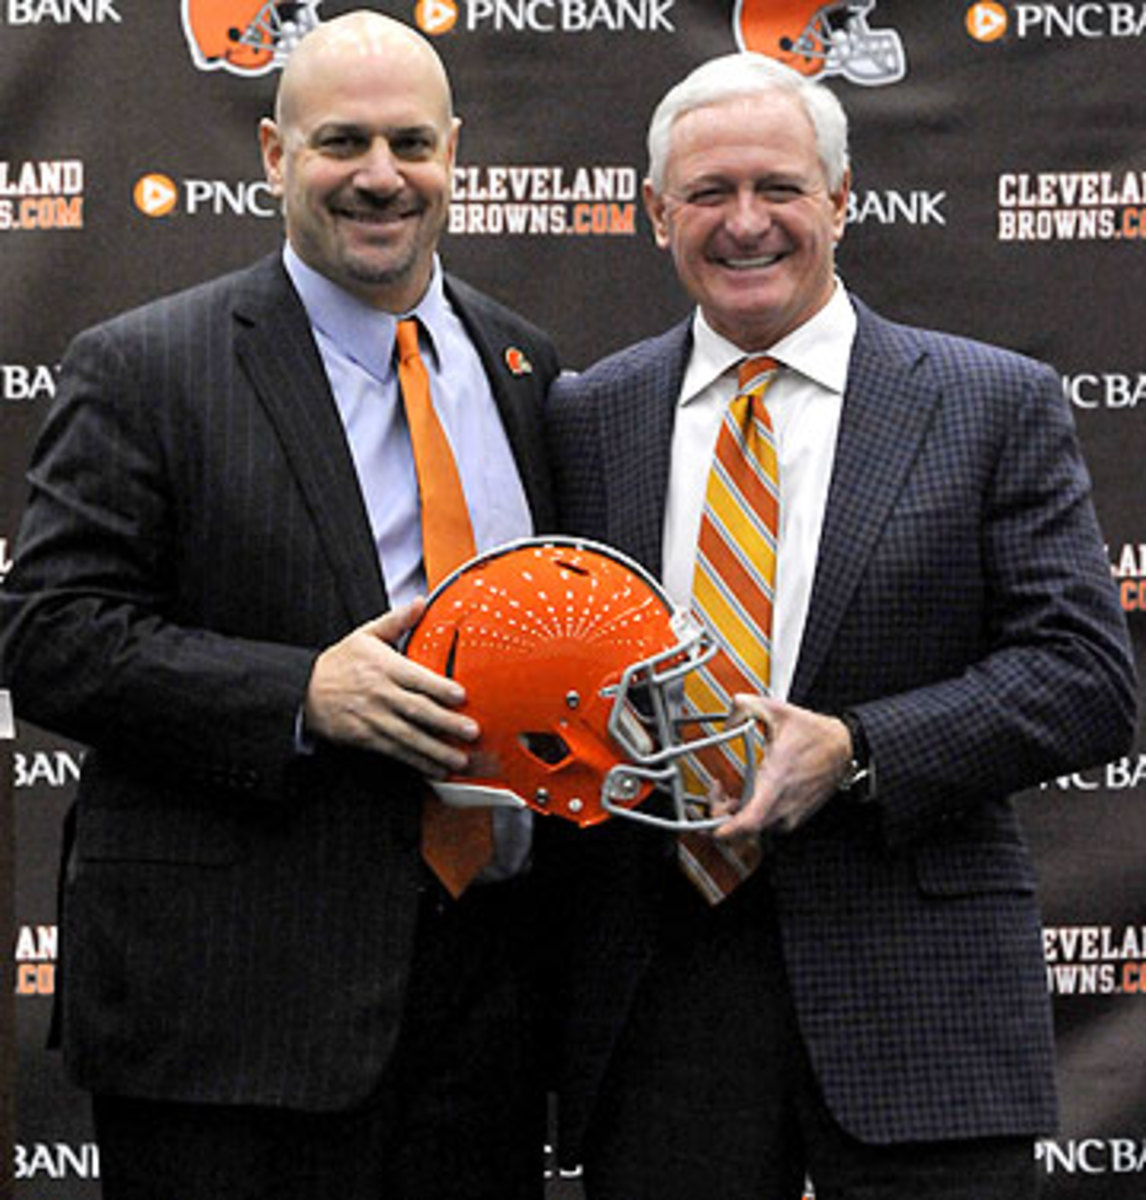 Last month, Haslam hired Mike Pettine, who will be the Browns' fourth head coach since 2009. (Nick Cammett/Getty Images)